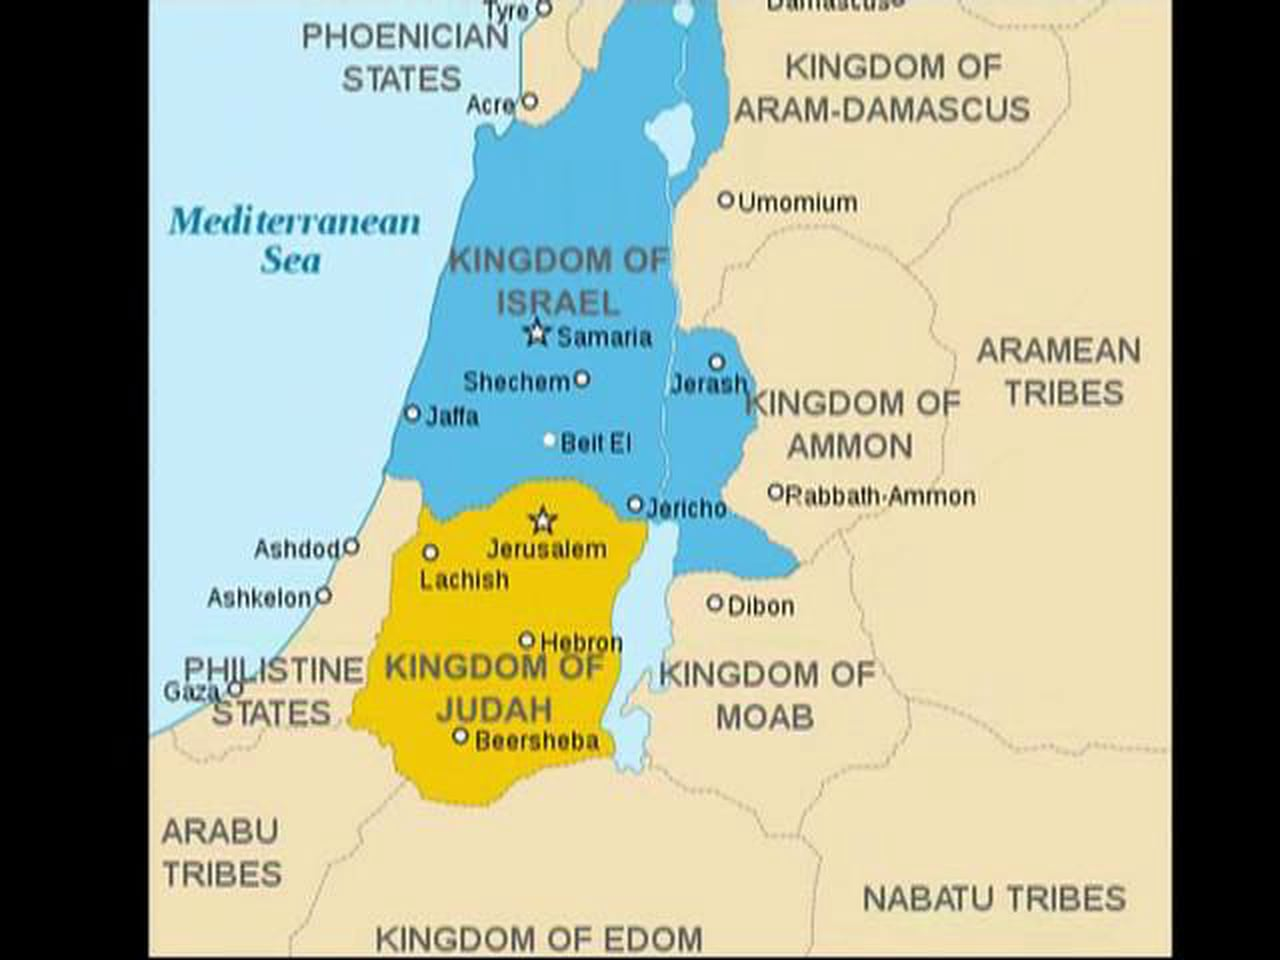 Why Did Israel Split into Two Kingdoms